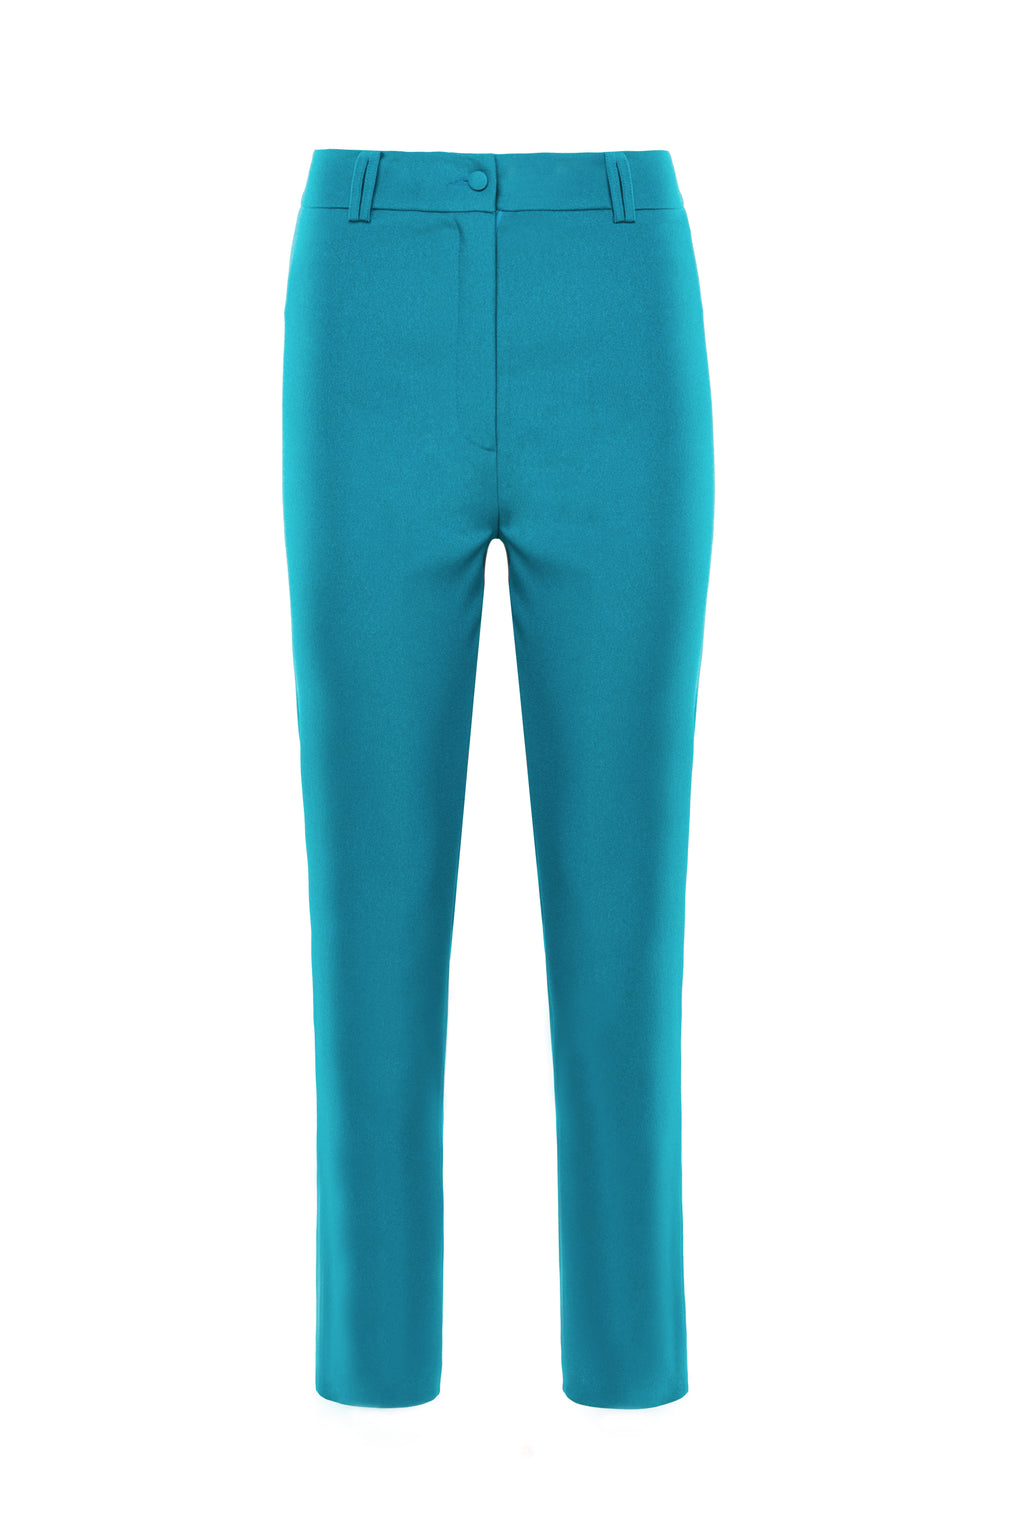 The Turquoise LouLou Pants